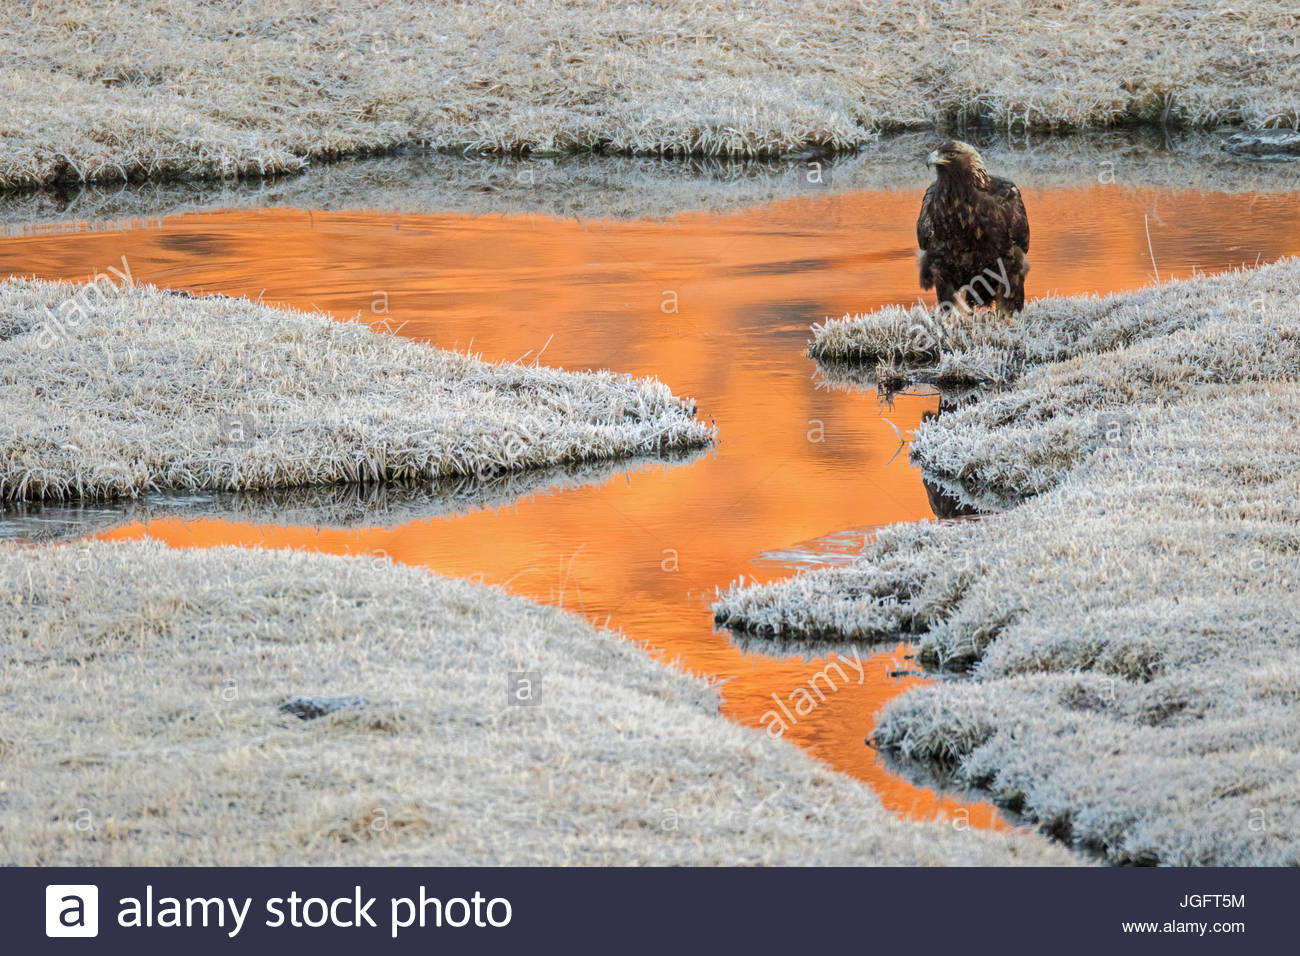 A golden eagle, Aquila chrysaetos, standing at the water's edge in Yellowstone National Park. - Stock Image